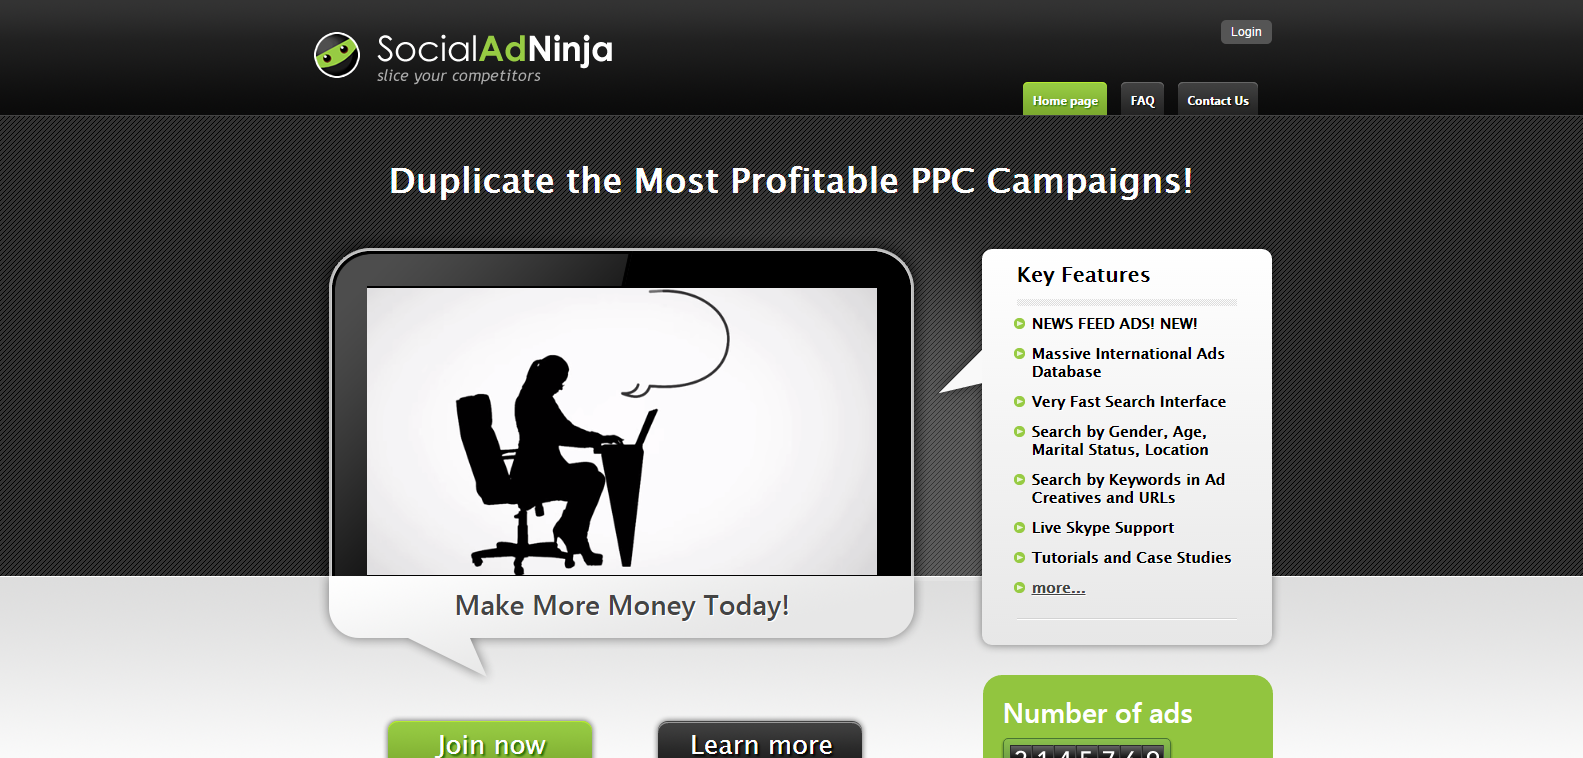 SocialAdNinja Slice your competitors